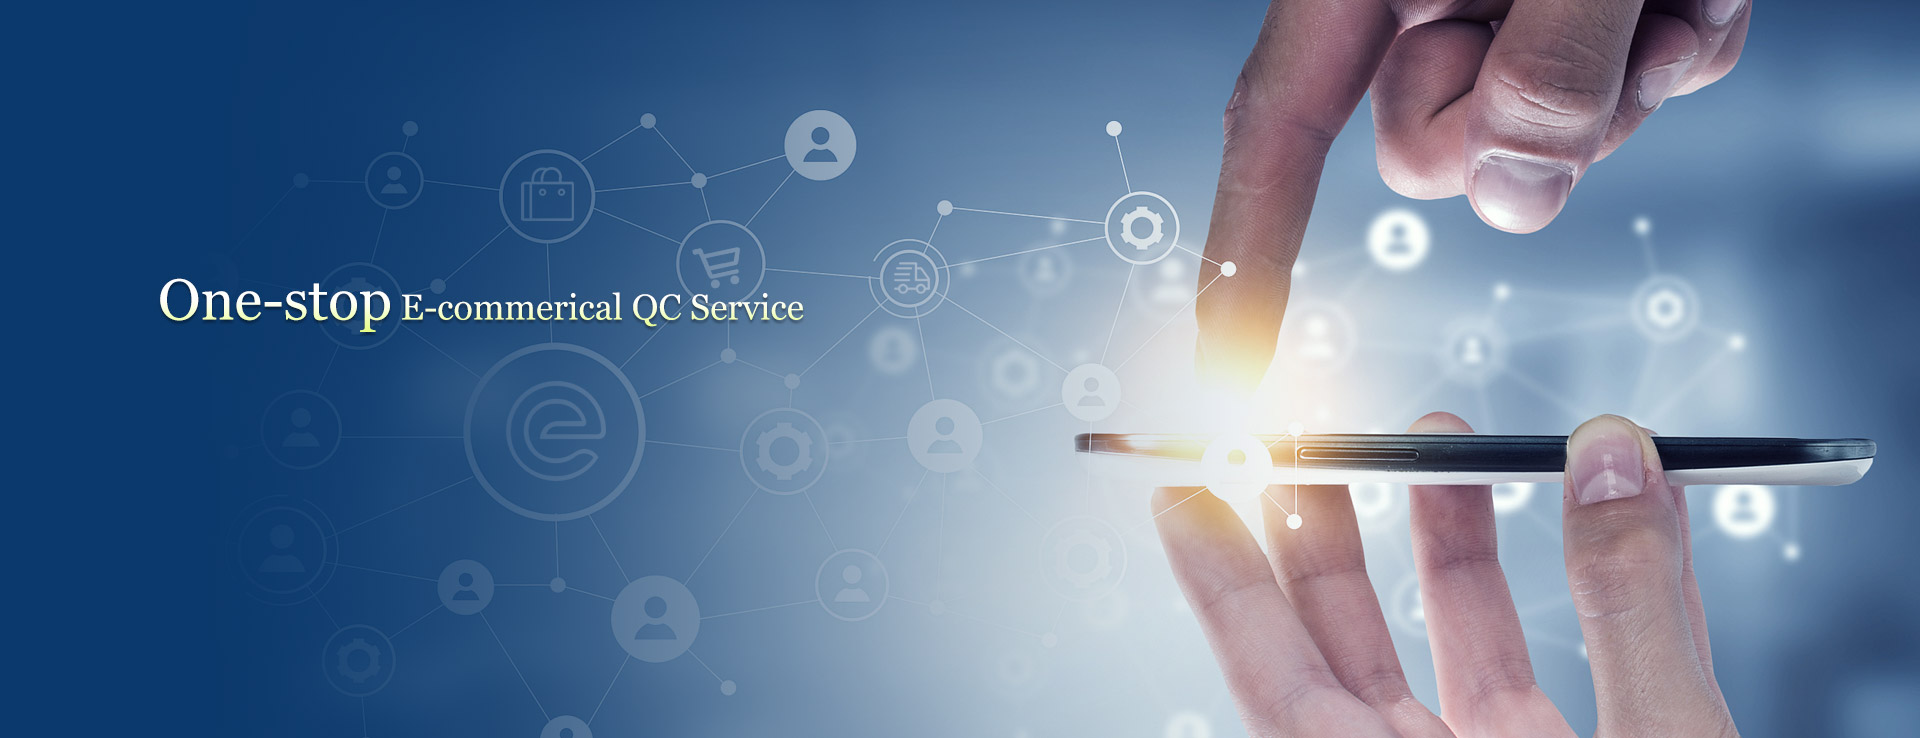 One-stop E-commerical QC Servi